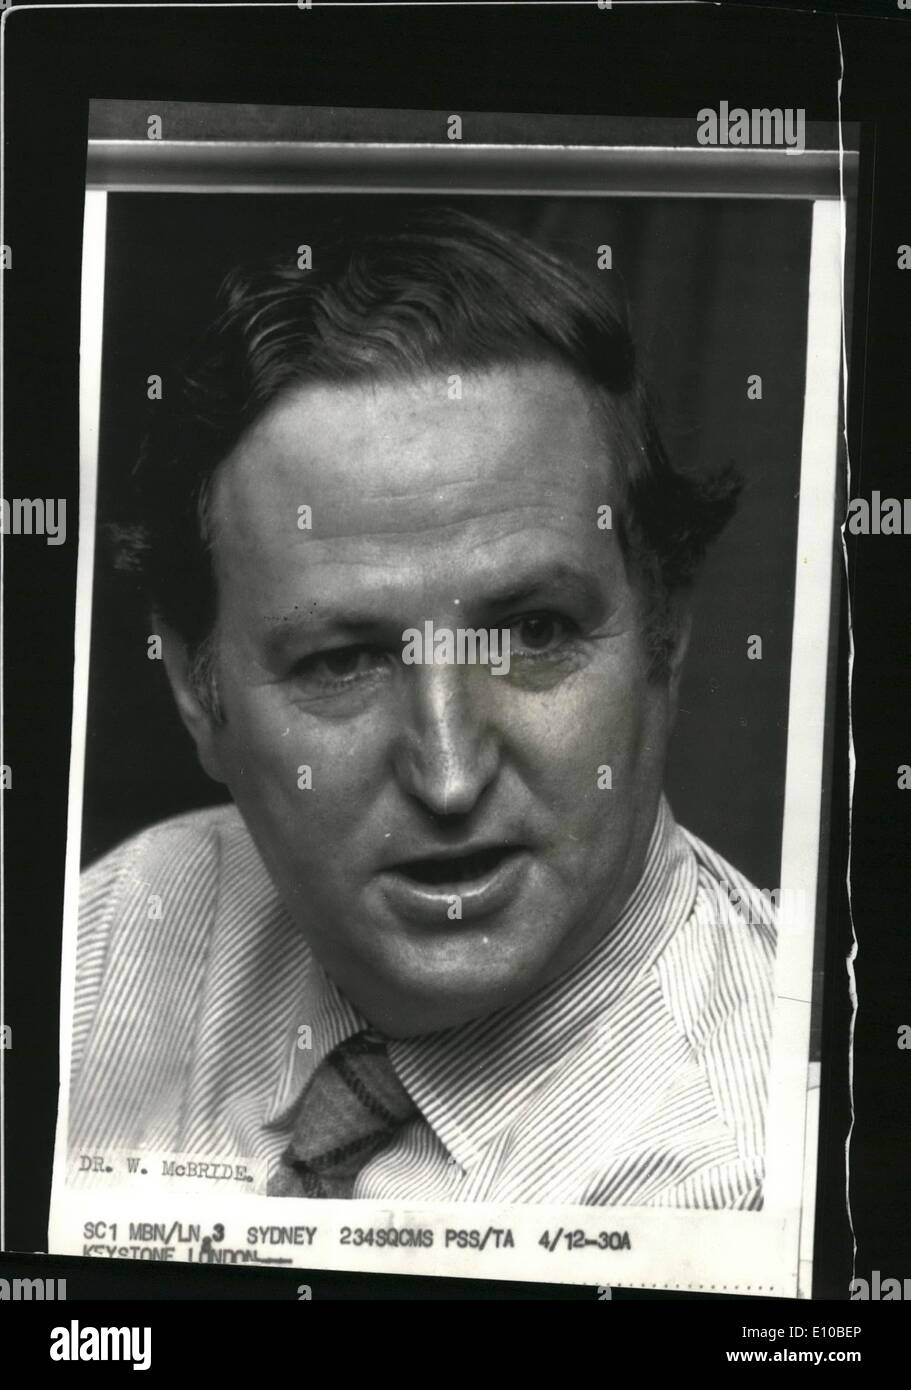 Mar. 03, 1972 - Thalidomide Doctor warns of new Drug Fear: Dr. William McBride, the Australian gynecologist who discovered the deforming effects of Thalidomide on unborn babies, today warned that he has found another deformative drug widely prescribed to British Women. Writin in the Australian Medical Journal, Dr. McBride named the drug as Imipramine and said: ''I am of the opinion that it is the cause of limb deformities in babies is taken in early pregnancy''. Photo Shows Dr. William McBride, the Australian gynecologist. - Stock Image